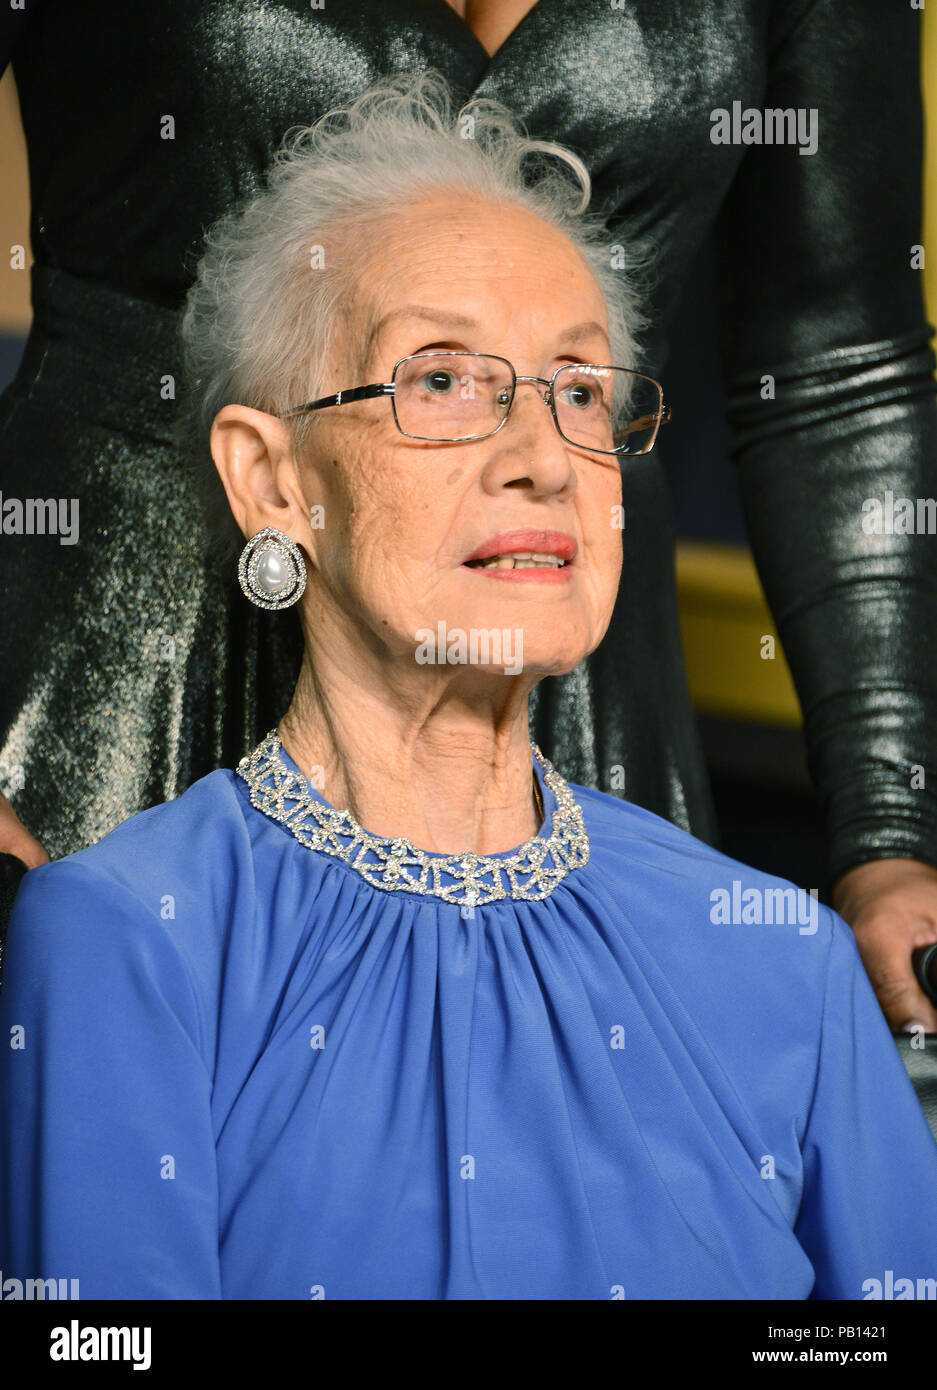 Katherine Johnson 450  89th Academy Awards ( Oscars ), press room at the Dolby Theatre in Los Angeles. February 26, 2017.Katherine Johnson 450 Event in Hollywood Life - California,  USA, Red Carpet and backstage, Film Industry, Celebrities,  movie celebrities, TV celebrities, Music celebrities, Photography,  Arts Culture and Entertainment, headshot, vertical, one person,, from the year , 2017, inquiry tsuni@Gamma-USA.com - Stock Image